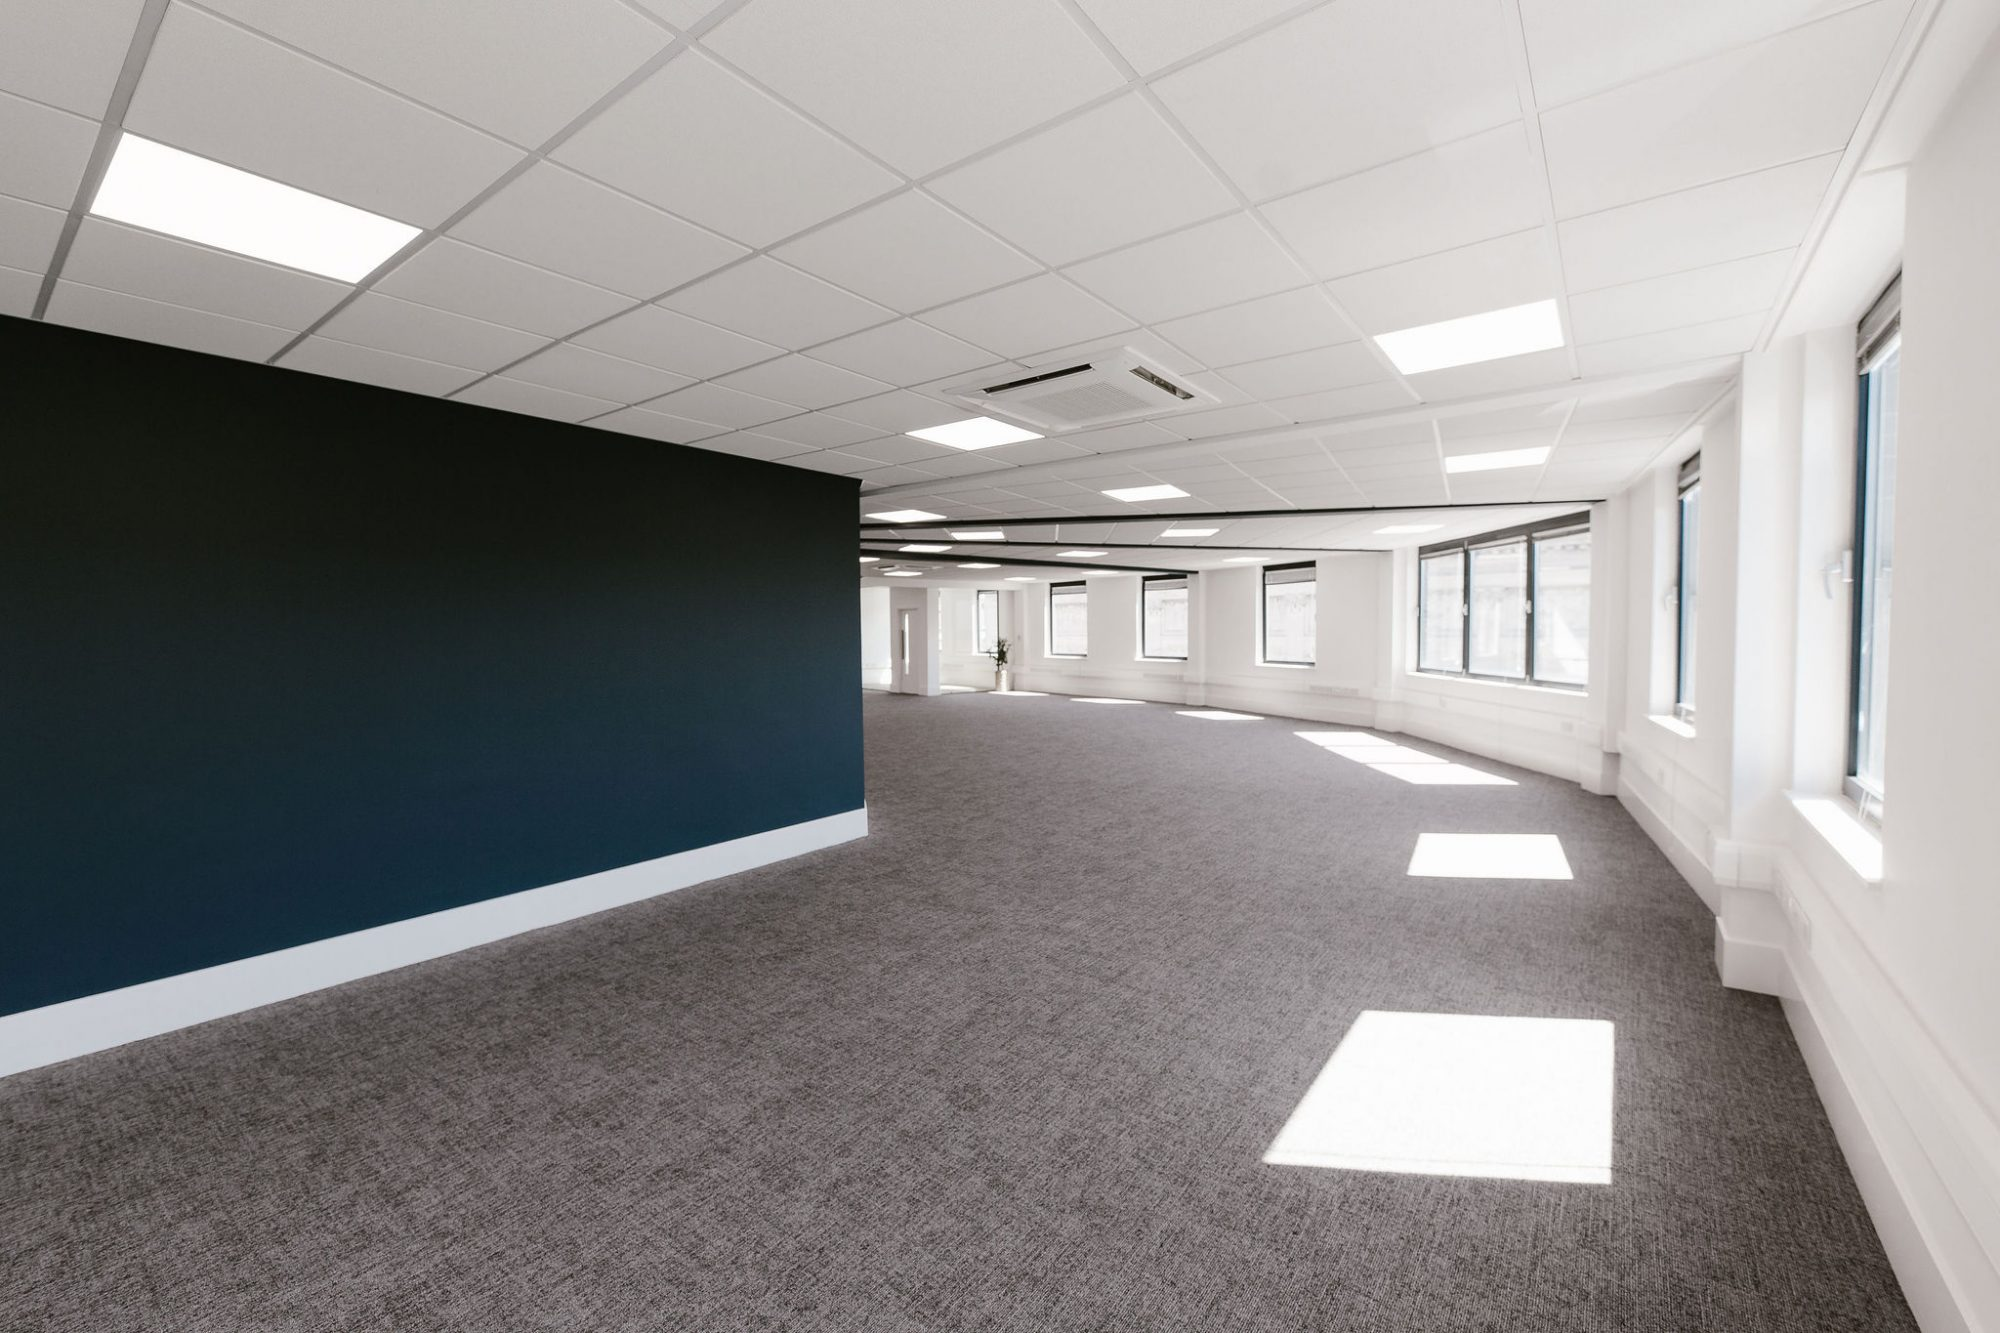 office space to rent Hull, offices in hull, offices to let hull